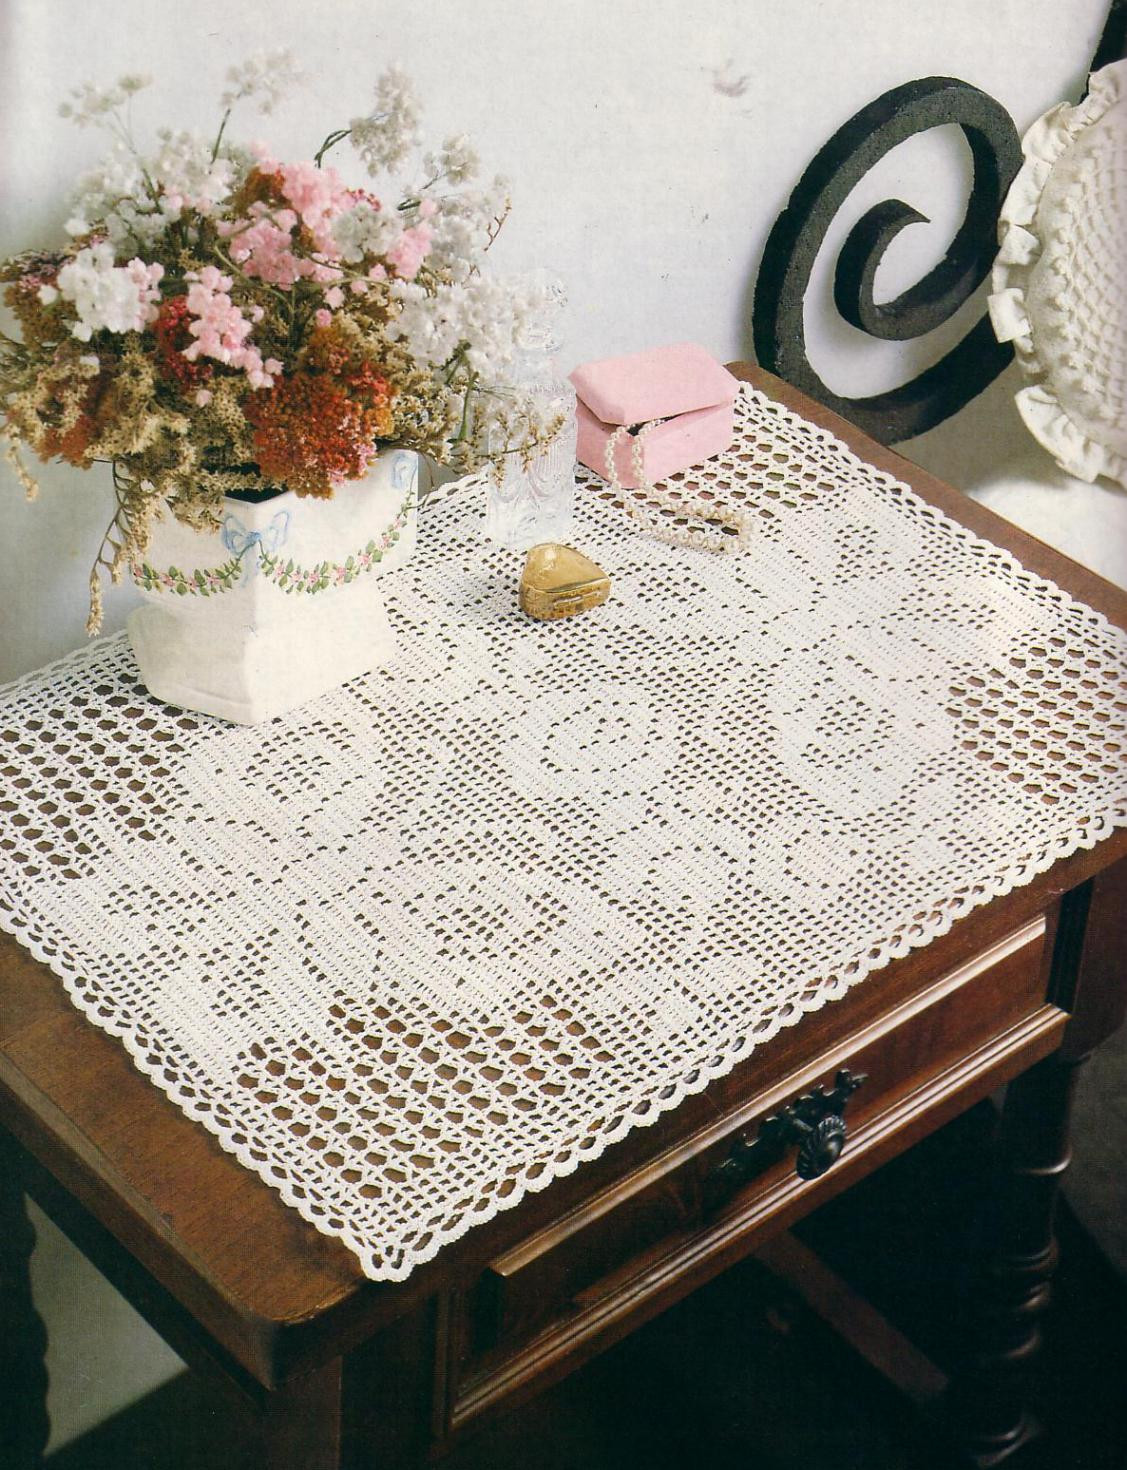 Free Crochet Pineapple Table Runner Patterns Unique Crochet Free Pattern Pineapple Runner – Crochet Club Of Amazing 49 Photos Free Crochet Pineapple Table Runner Patterns